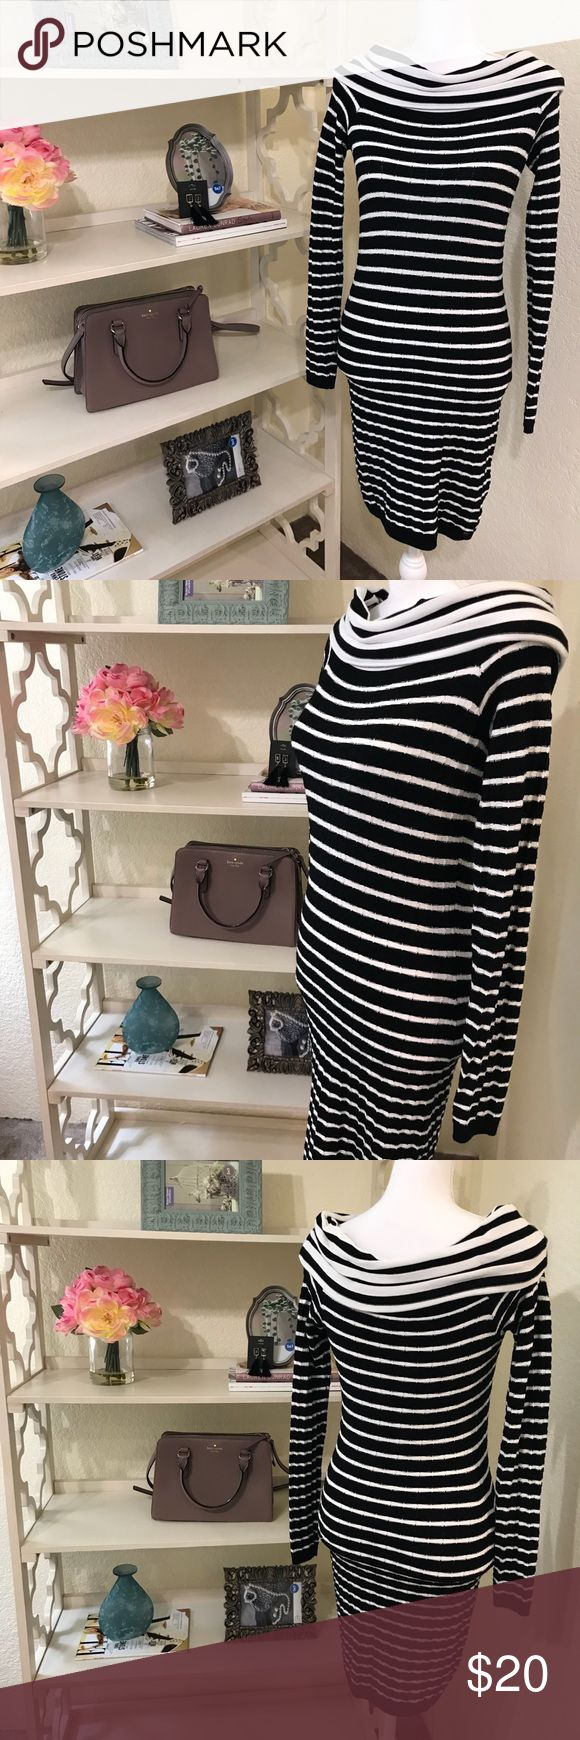 Guess Dress Used, but in good condition! Great colors. Pair it with some tights, heels and put a coat over it! Guess Dresses Midi